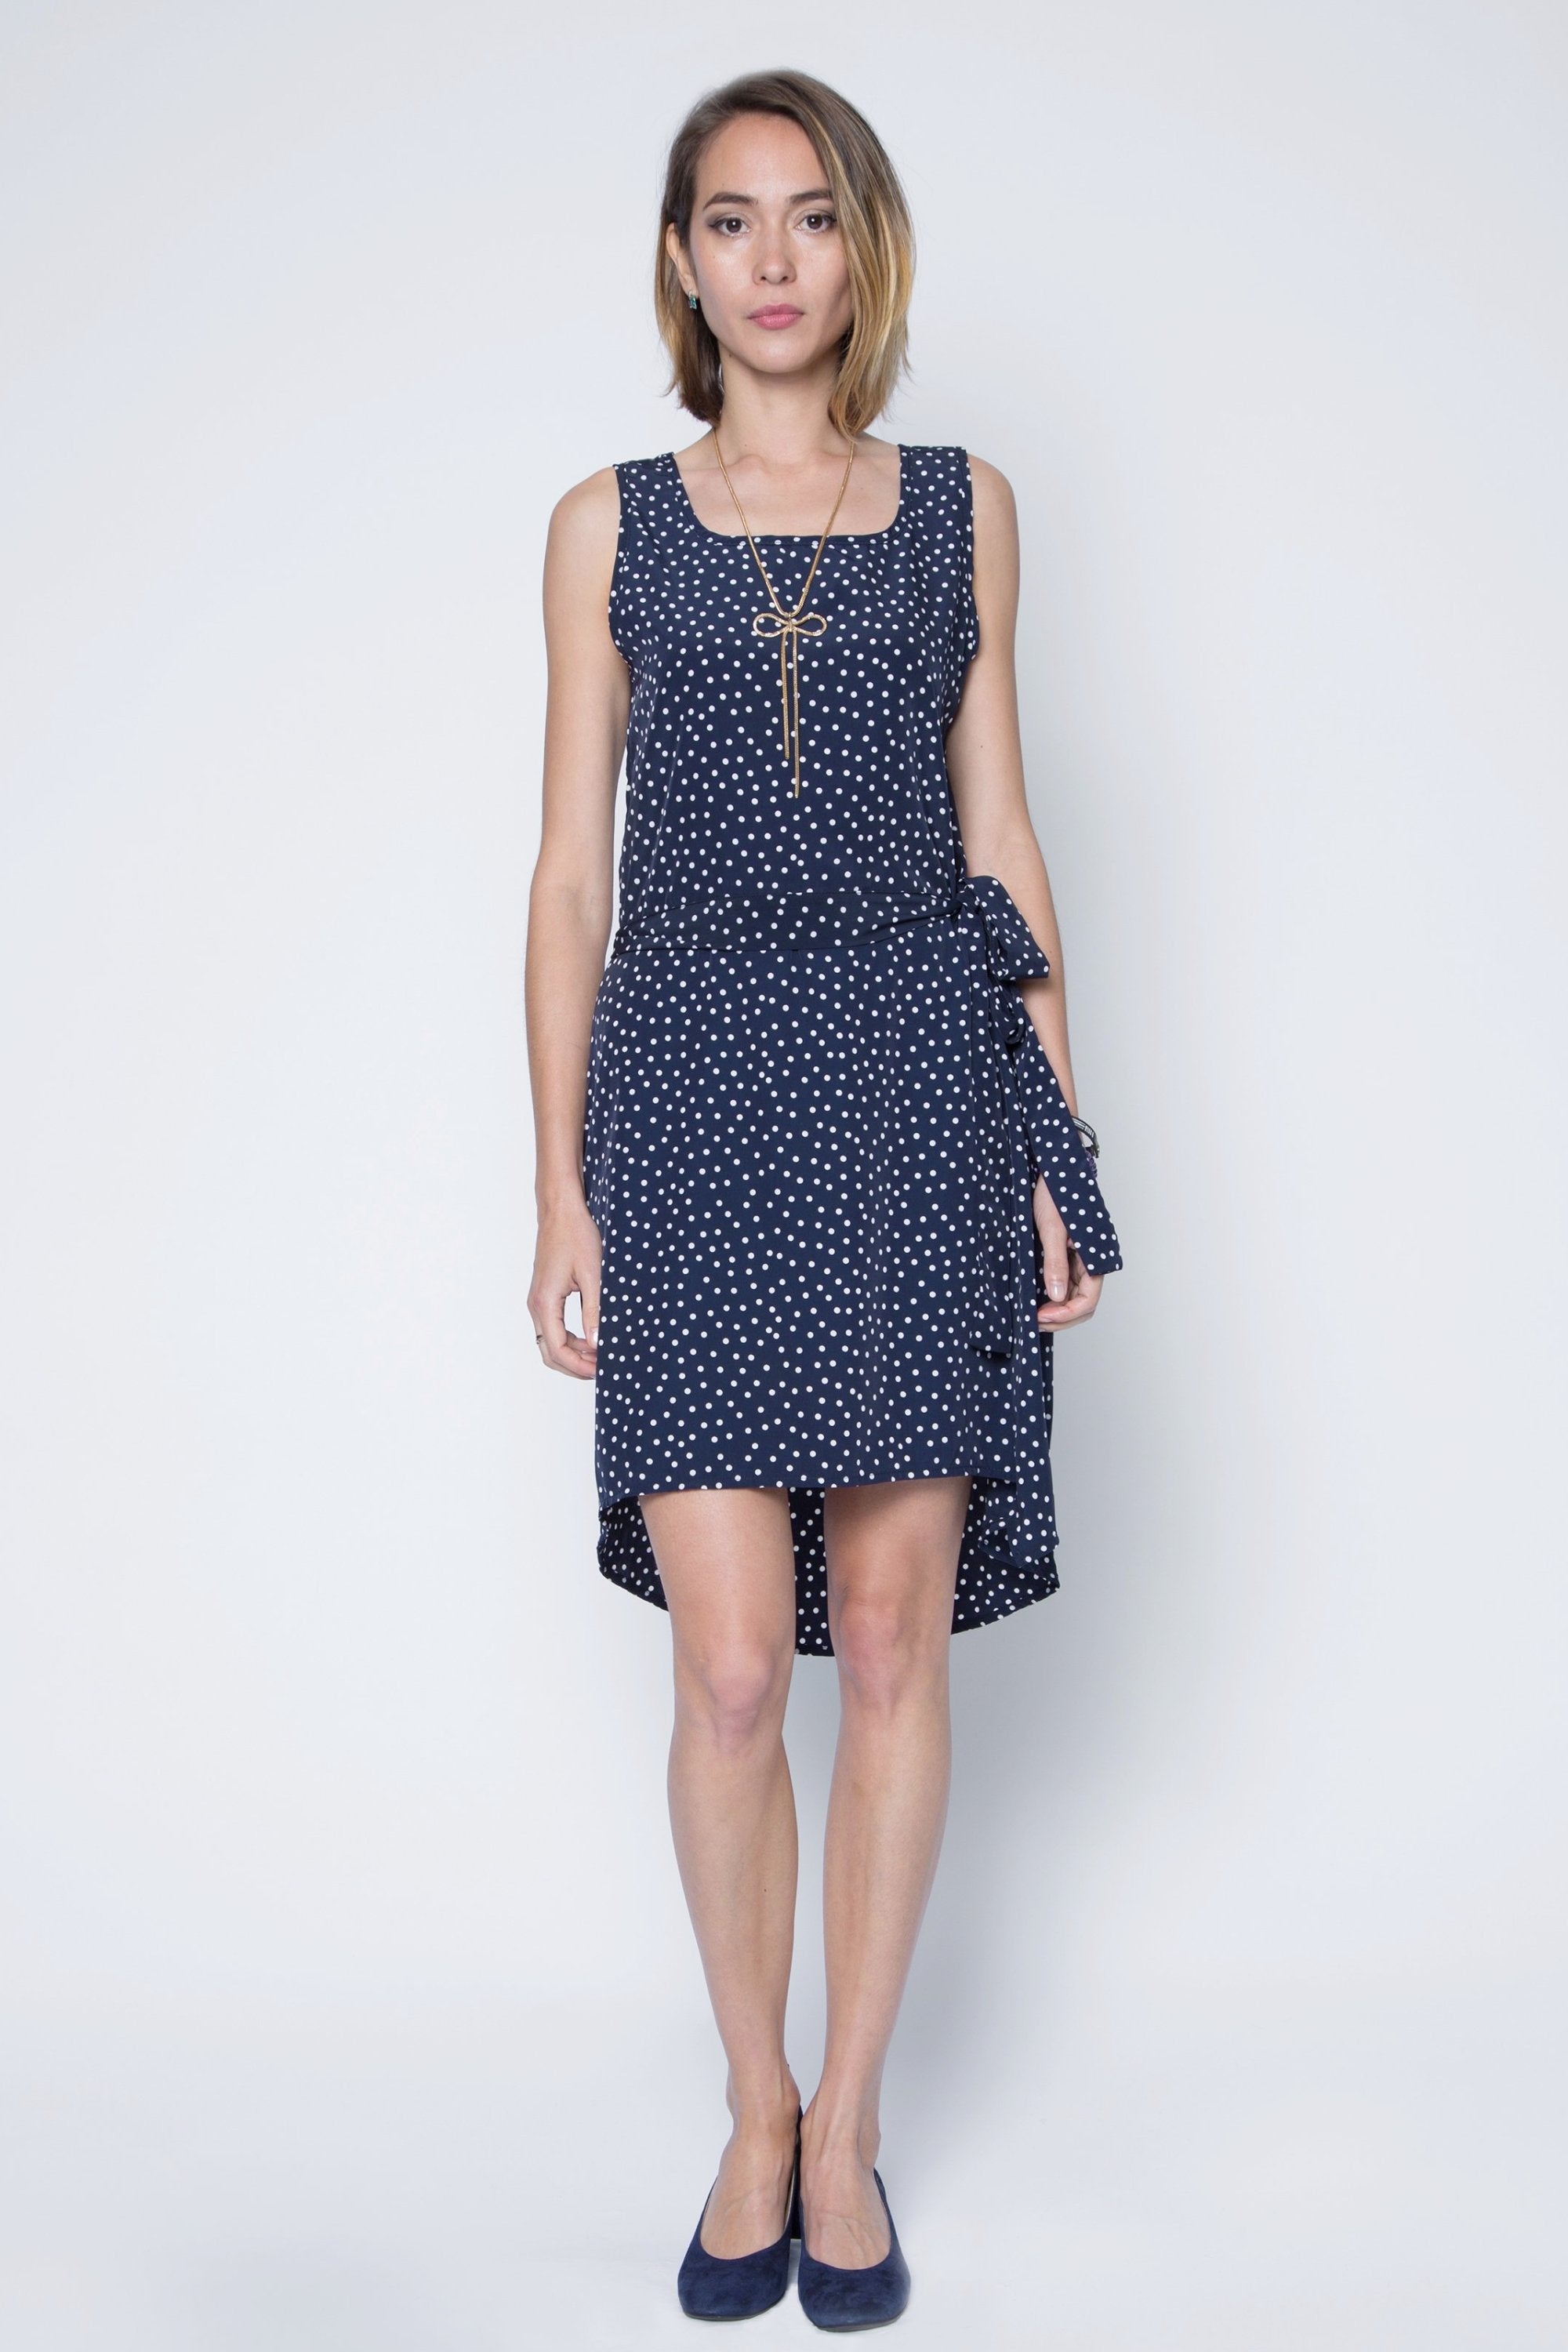 New! Polka Dot Chiffon High Low Dress with Adjustable Waist